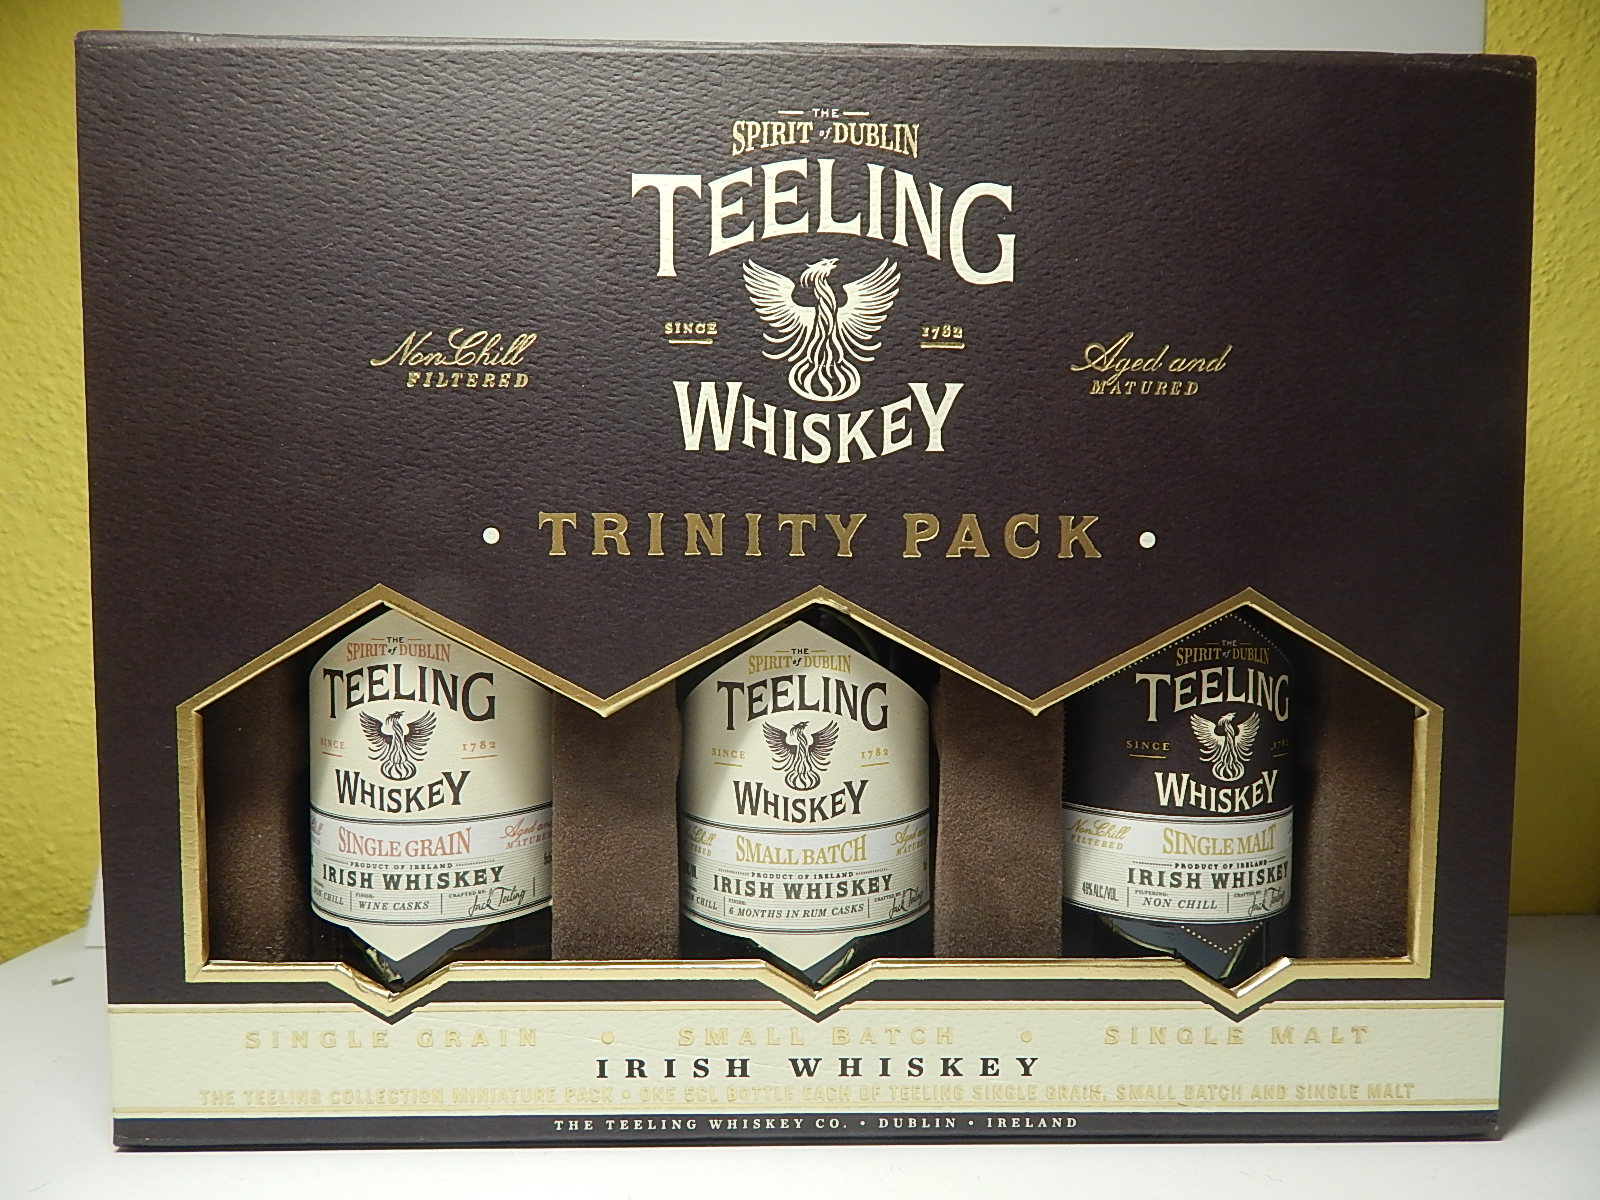 TEELING Single Grain - Small Batch - Single Malt Irish Whiskey